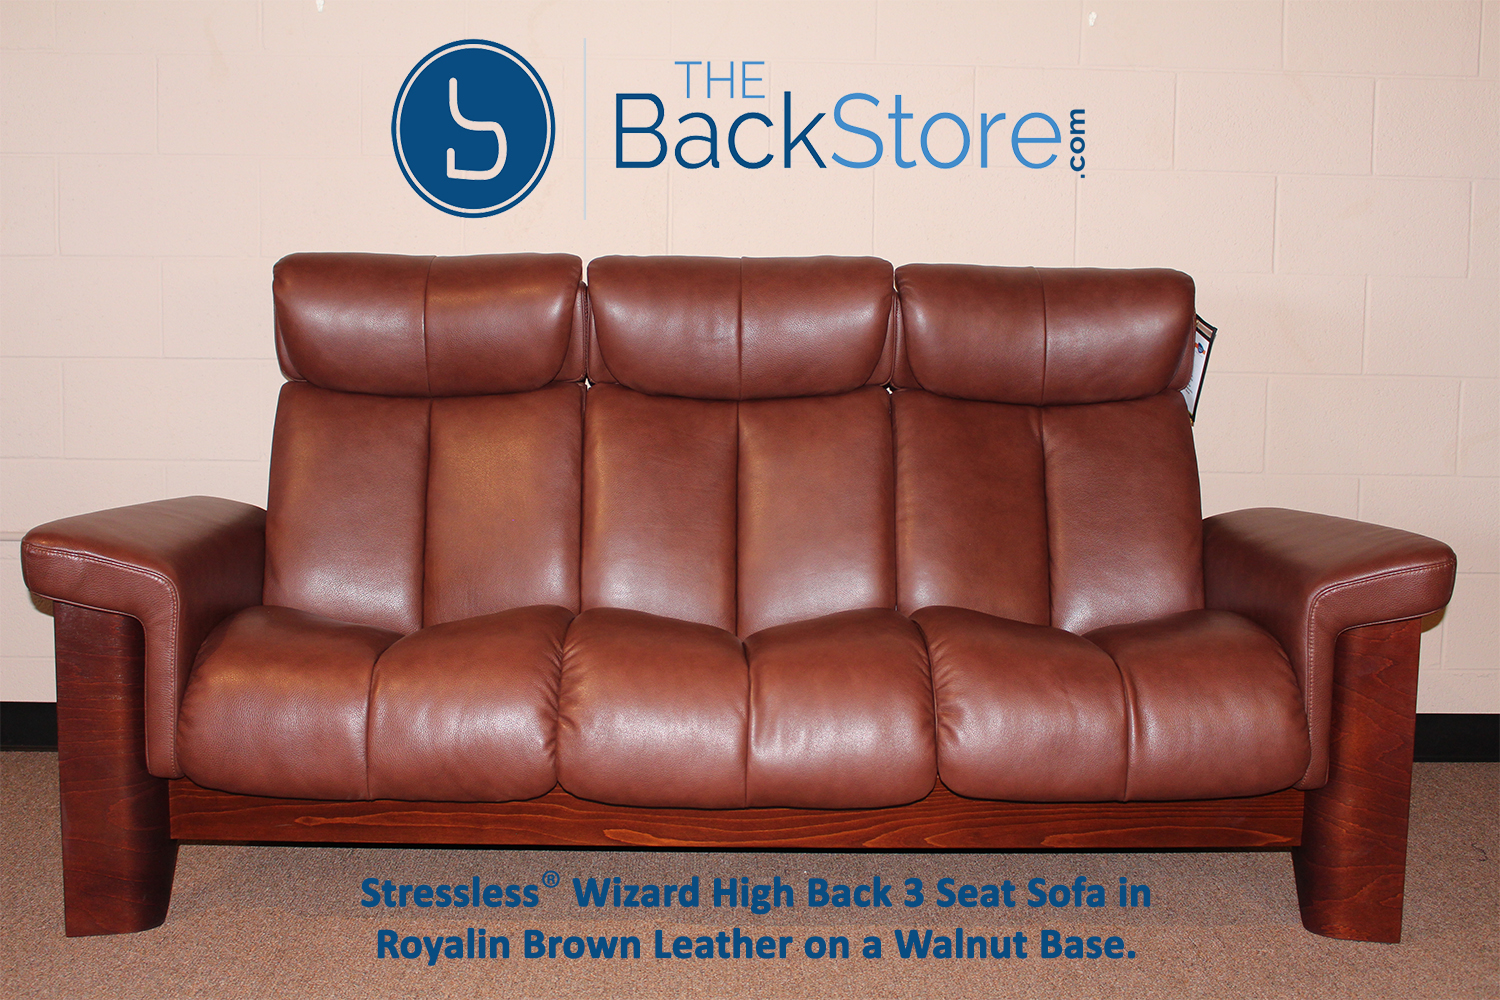 Stressless Wizard 3 Seat High Back Sofa Royalin Brown Color Leather  Recliner Sofa